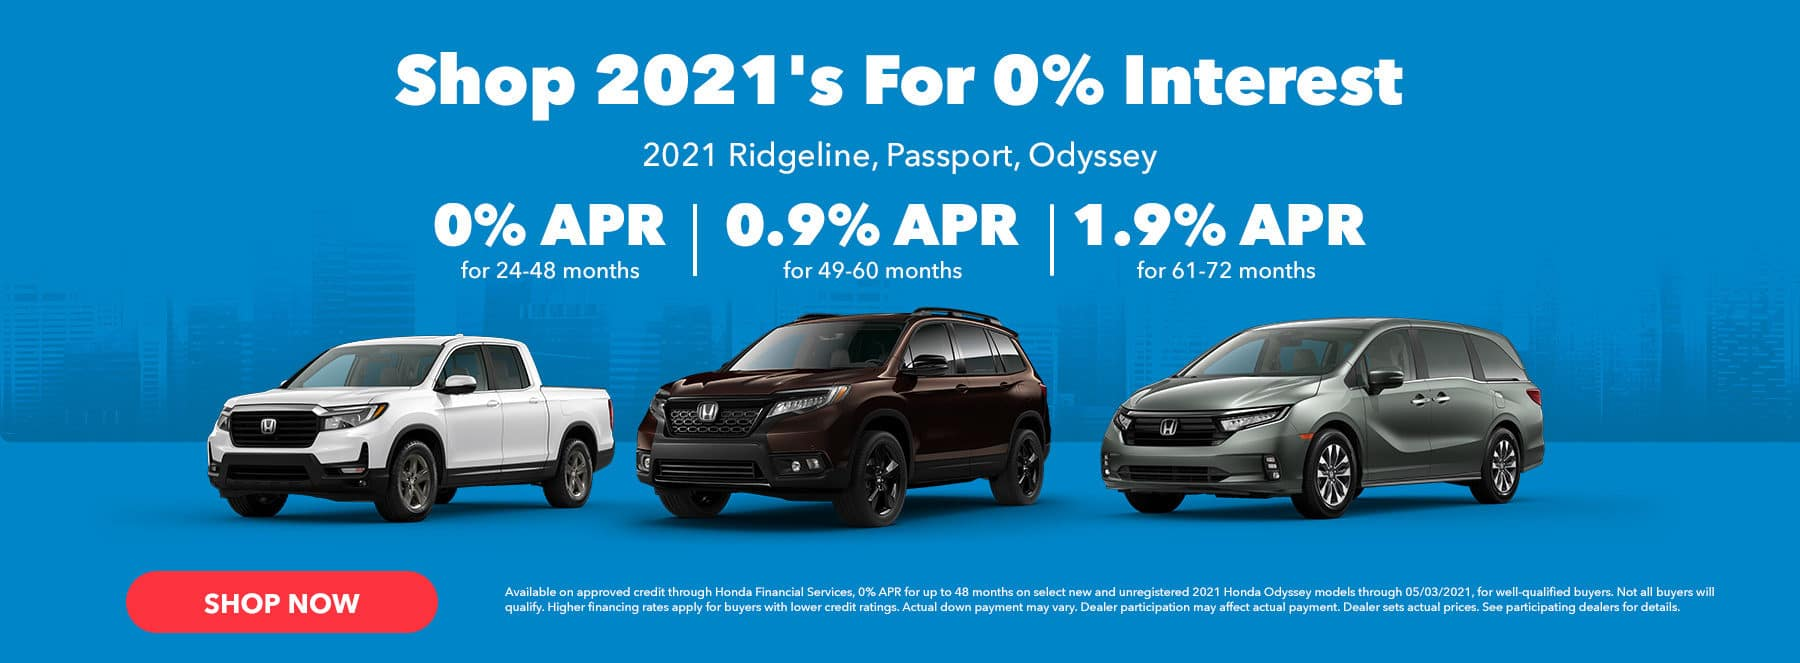 Shop 2021's For 0% Interest Subtext: 2021 Ridgeline, Passport, Odyssey